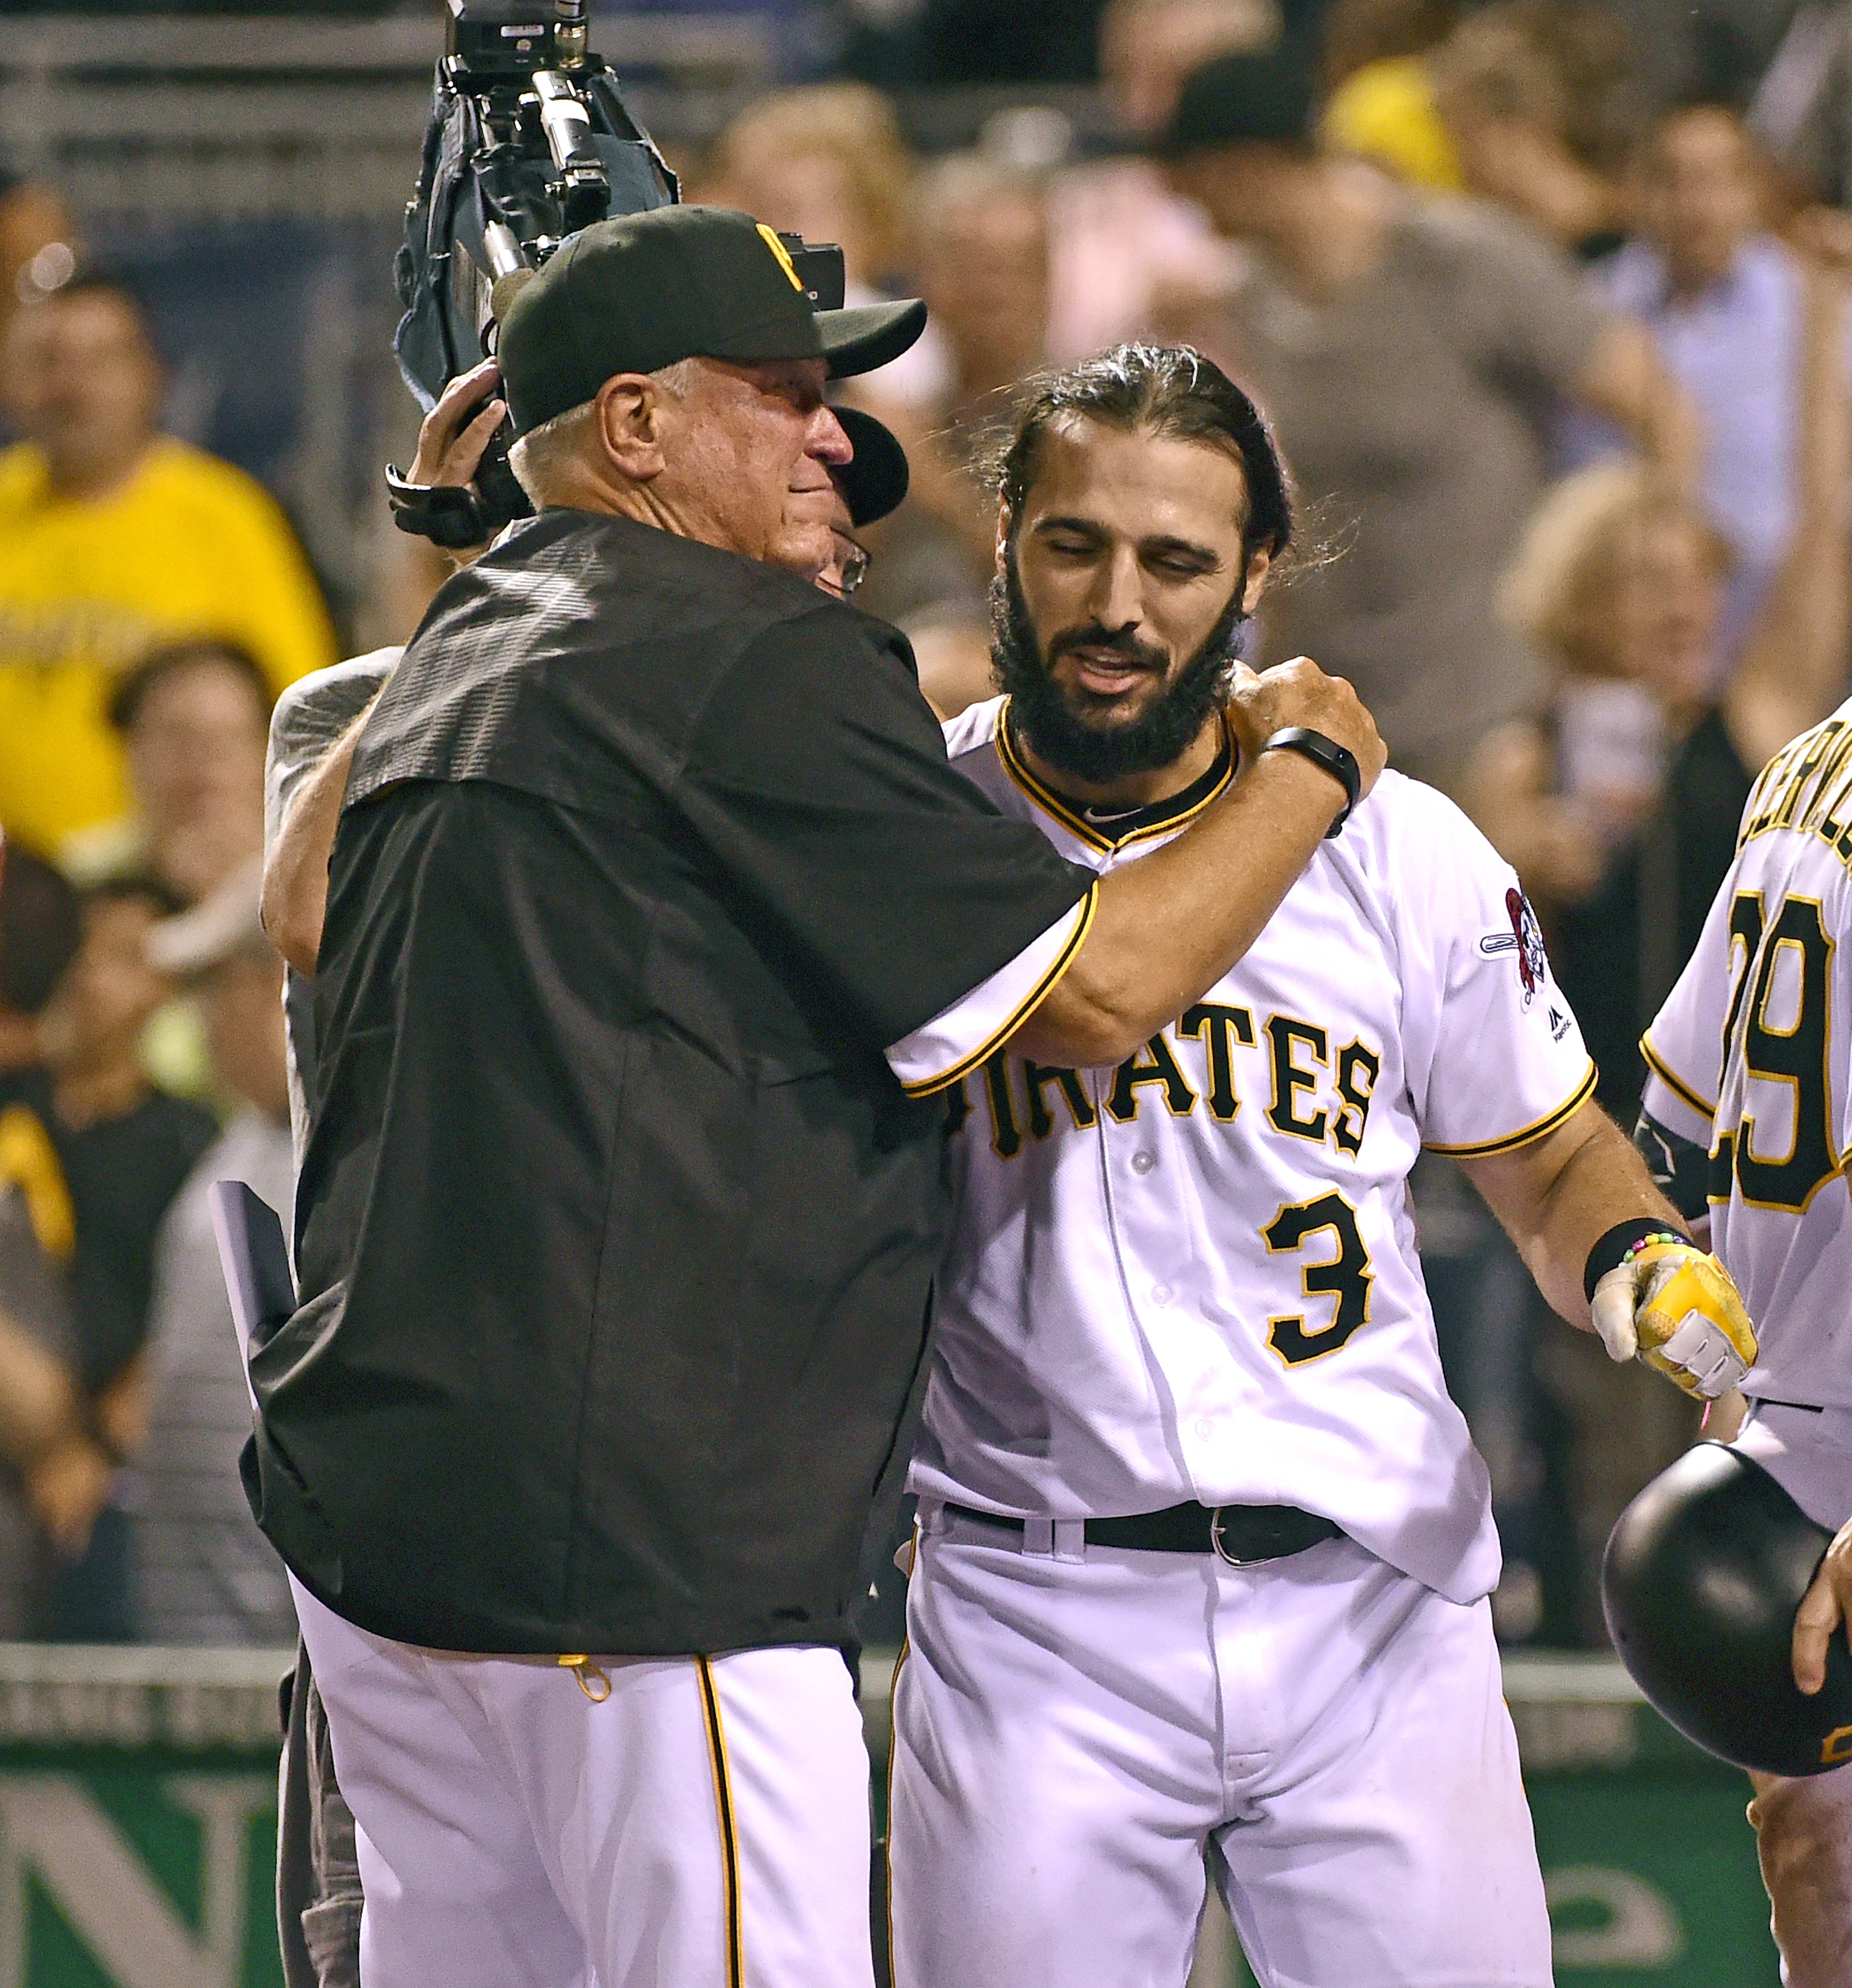 Pittsburgh Pirates manager Clint Hurdle, left, hugs Sean Rodriguez after Rodriguez hit a home run in the ninth inning of a baseball game against the Cincinnati Reds in Pittsburgh, Friday, Aug. 5, 2016. The Pirates won 3-2. (AP Photo/Fred Vuich)